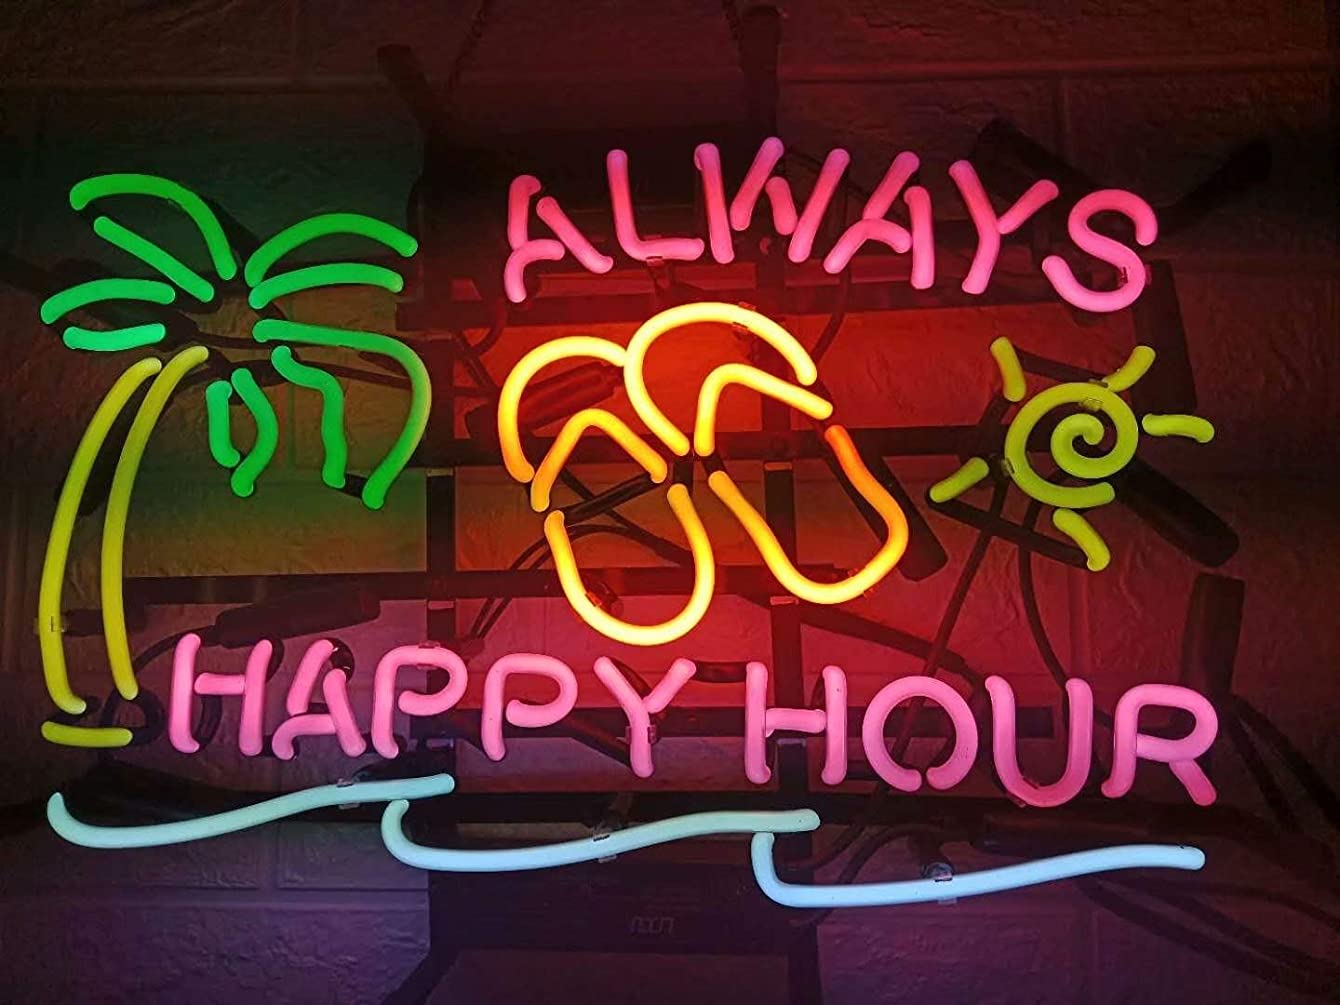 LDGJ Neon Signs for Wall Decor Always Happy Hour Sign Home Beer Bar Pub Recreation Room Lights Windows Glass Party